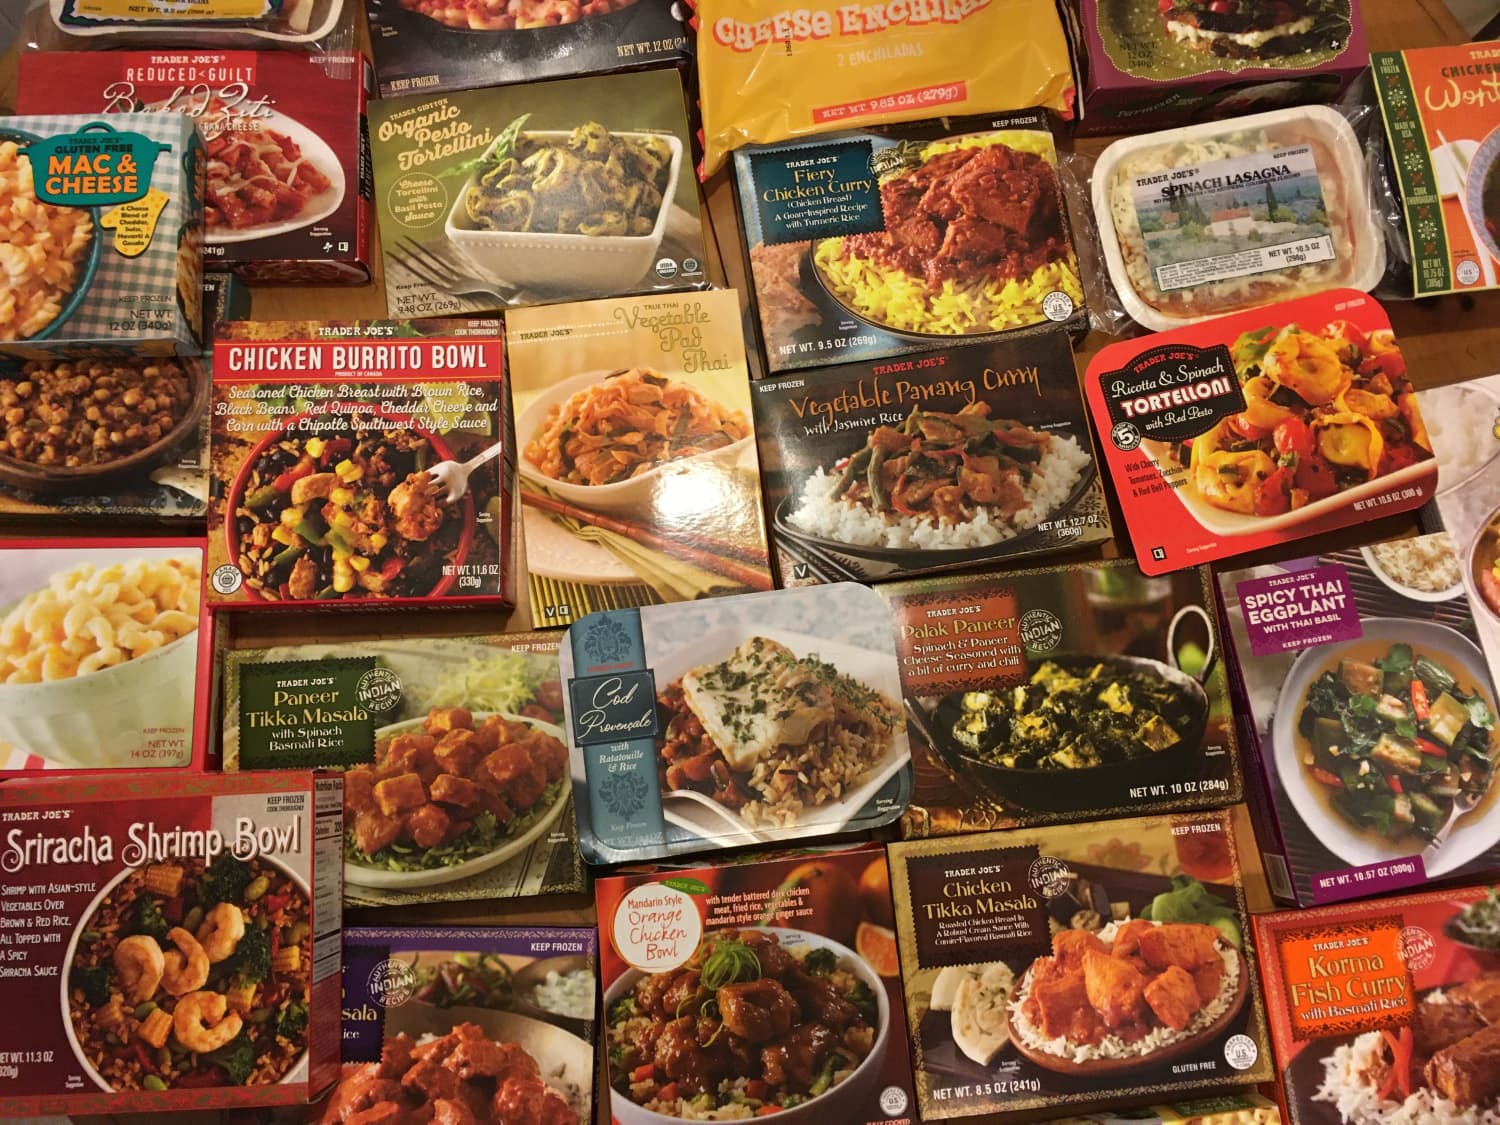 We Tried 30 Different Frozen Dinners at Trader Joe's. Here Are the Best 5.